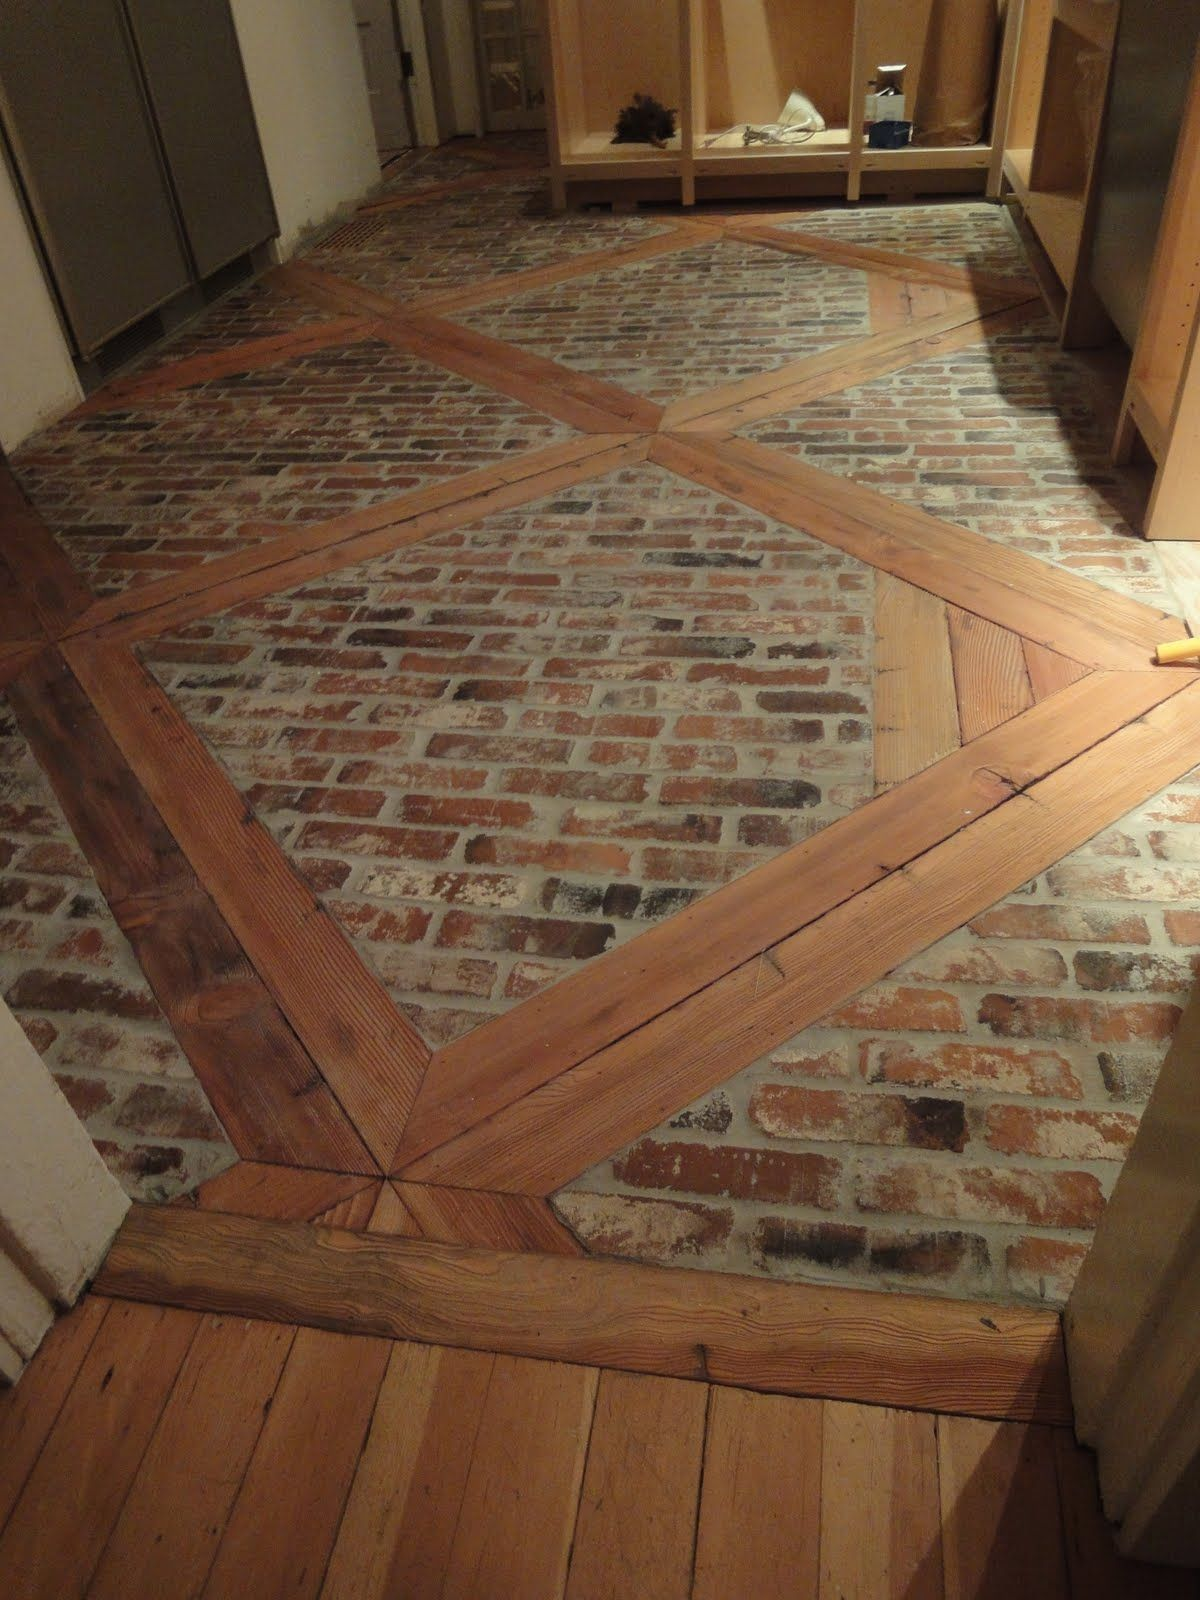 Diy how to install this brick floor using 2 x 4s and brick diy how to install this brick floor using 2 x 4s and brick veneers dailygadgetfo Gallery